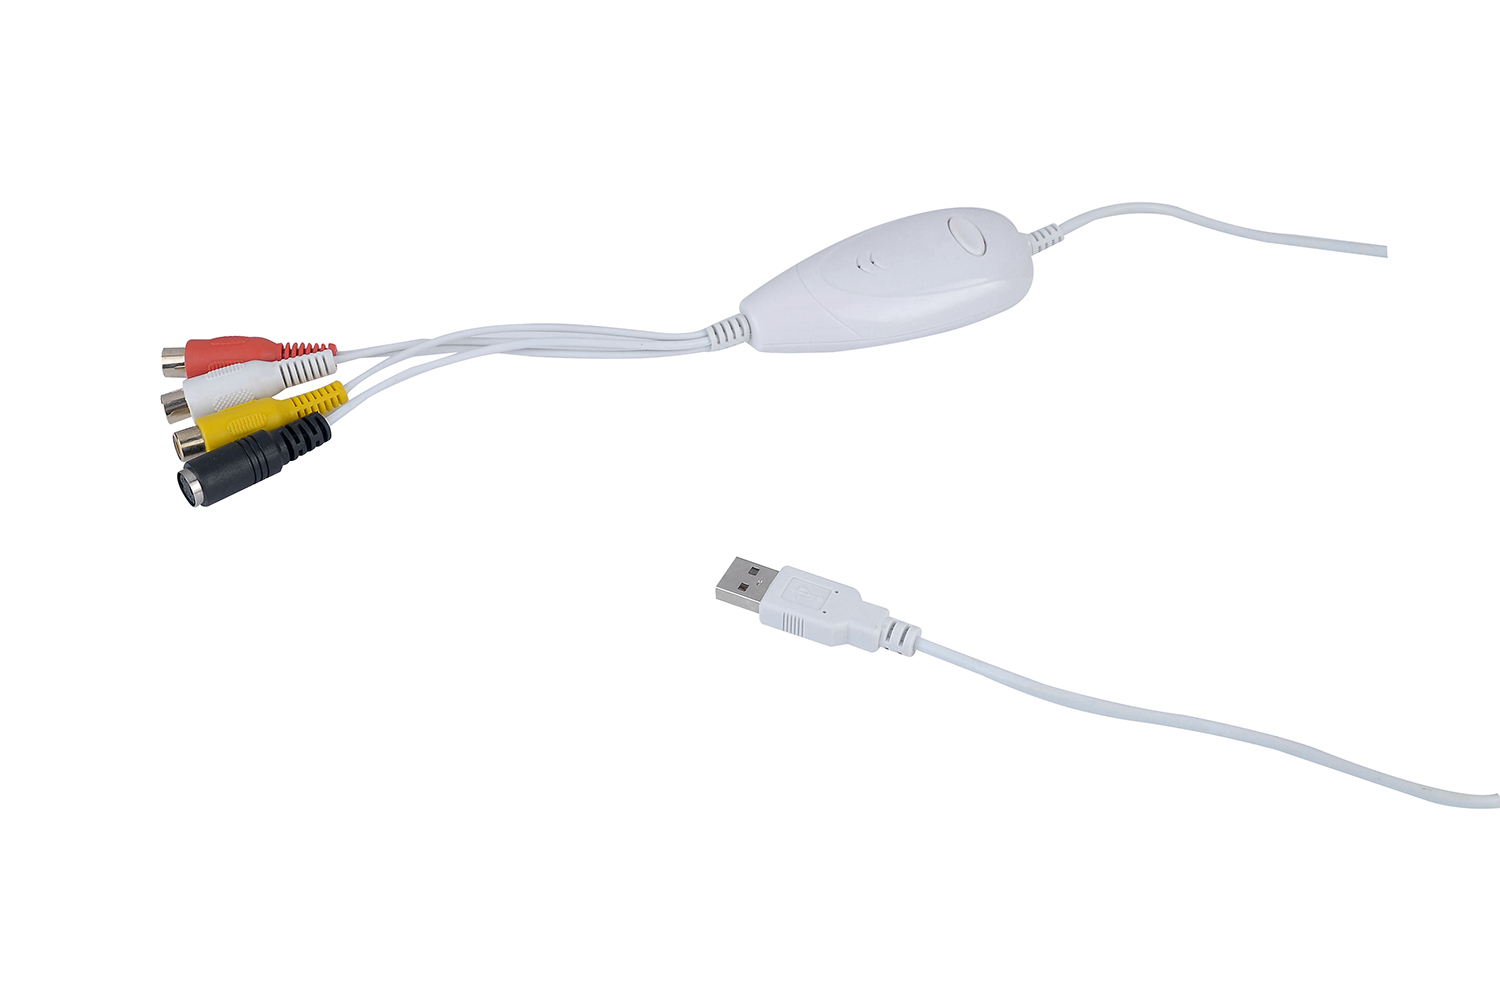 Copy the VHS Hi8 Analog Video to PC USB Video Grabber for Win&Mac,usb video capture device,video converter ezcap1568